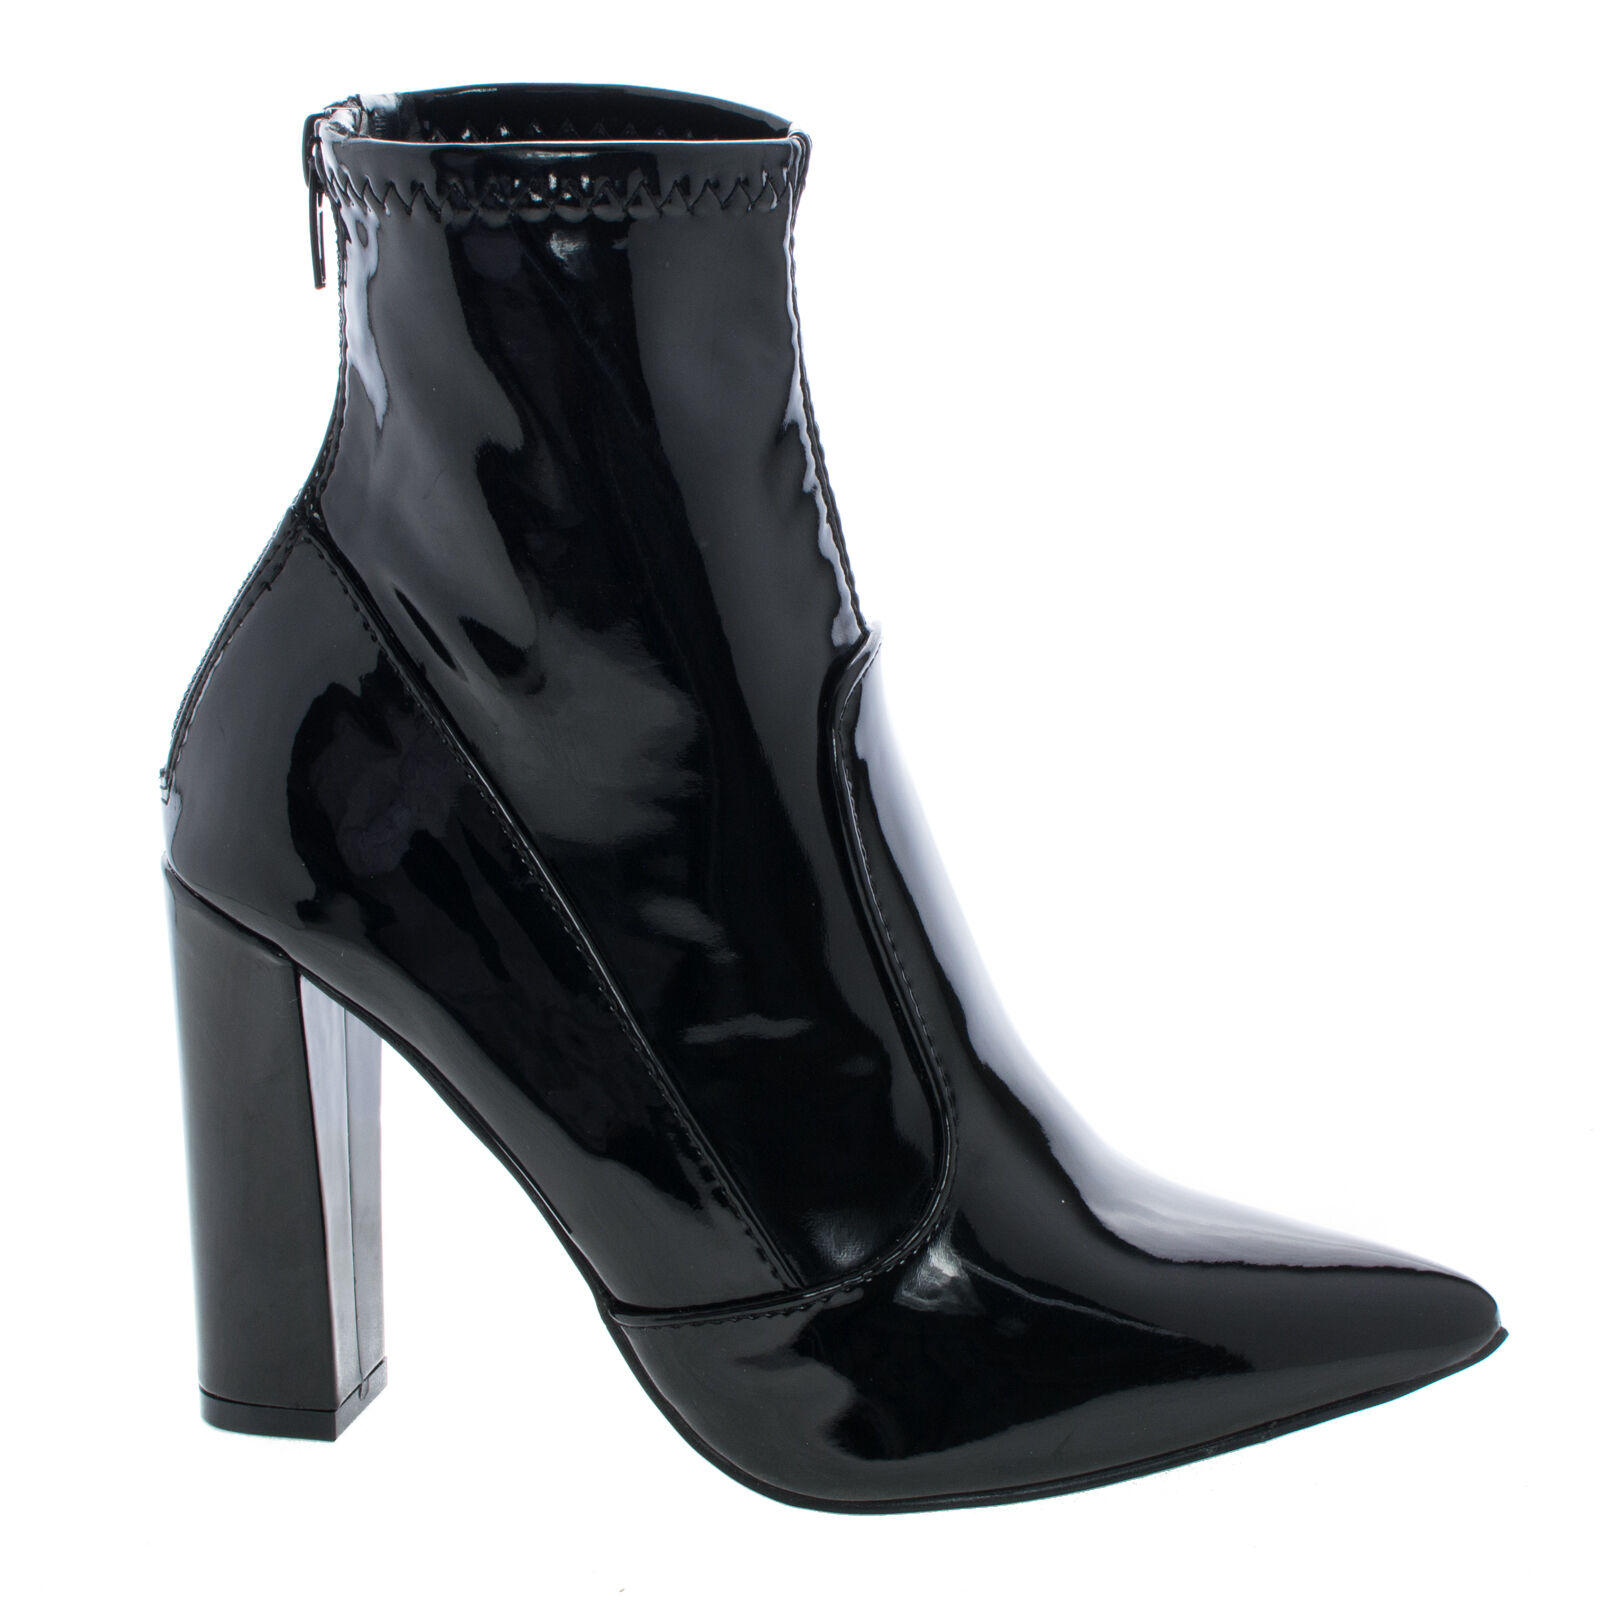 Fetish Ankle Booties On Block High Heel Dress Boots